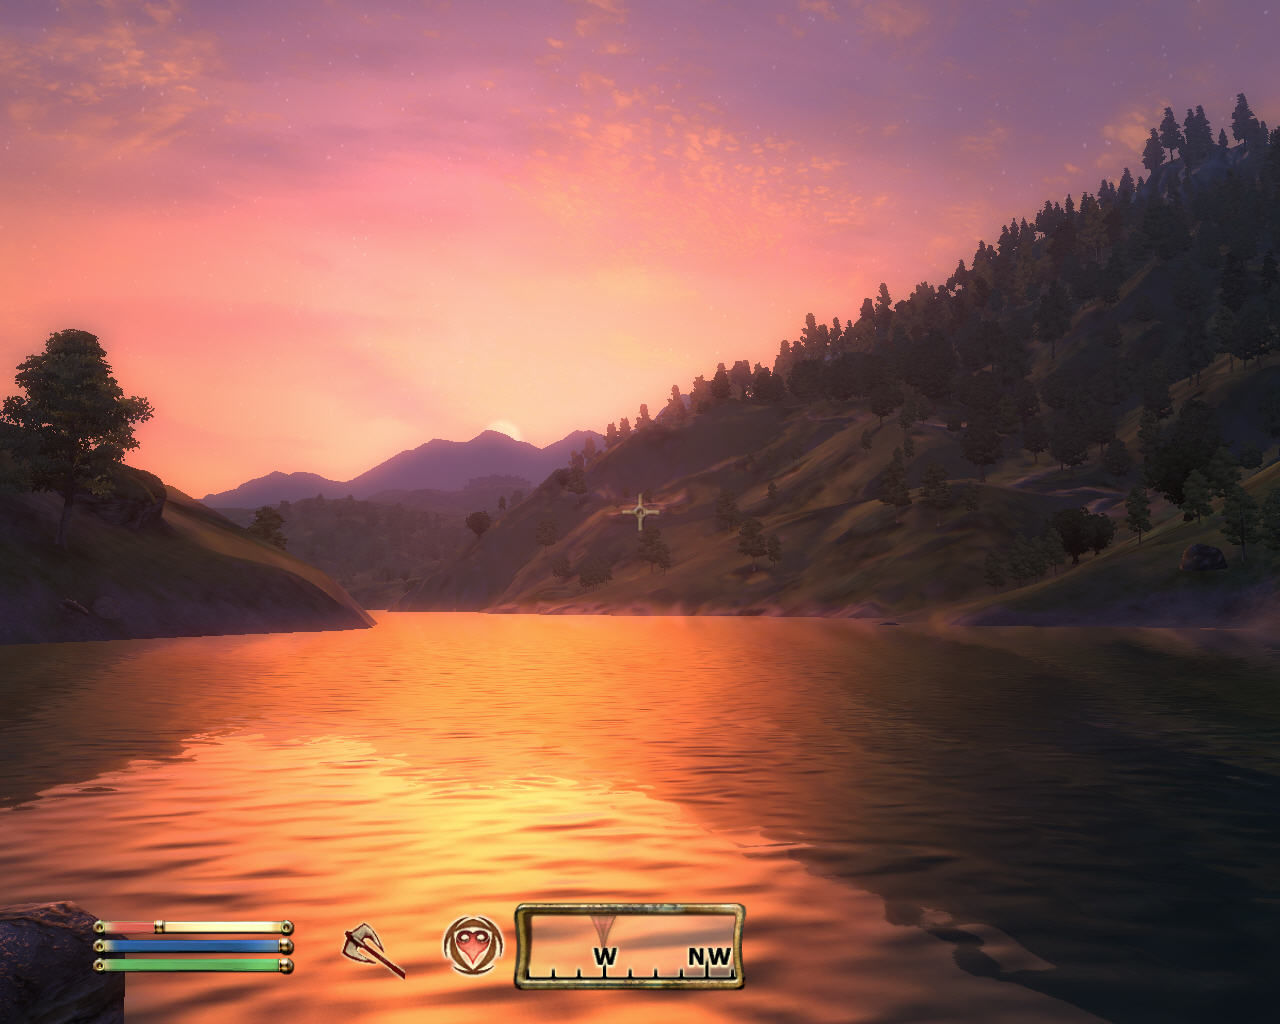 The Elder Scrolls IV: Oblivion Windows Beautiful sunset. This game looks absolutely amazing